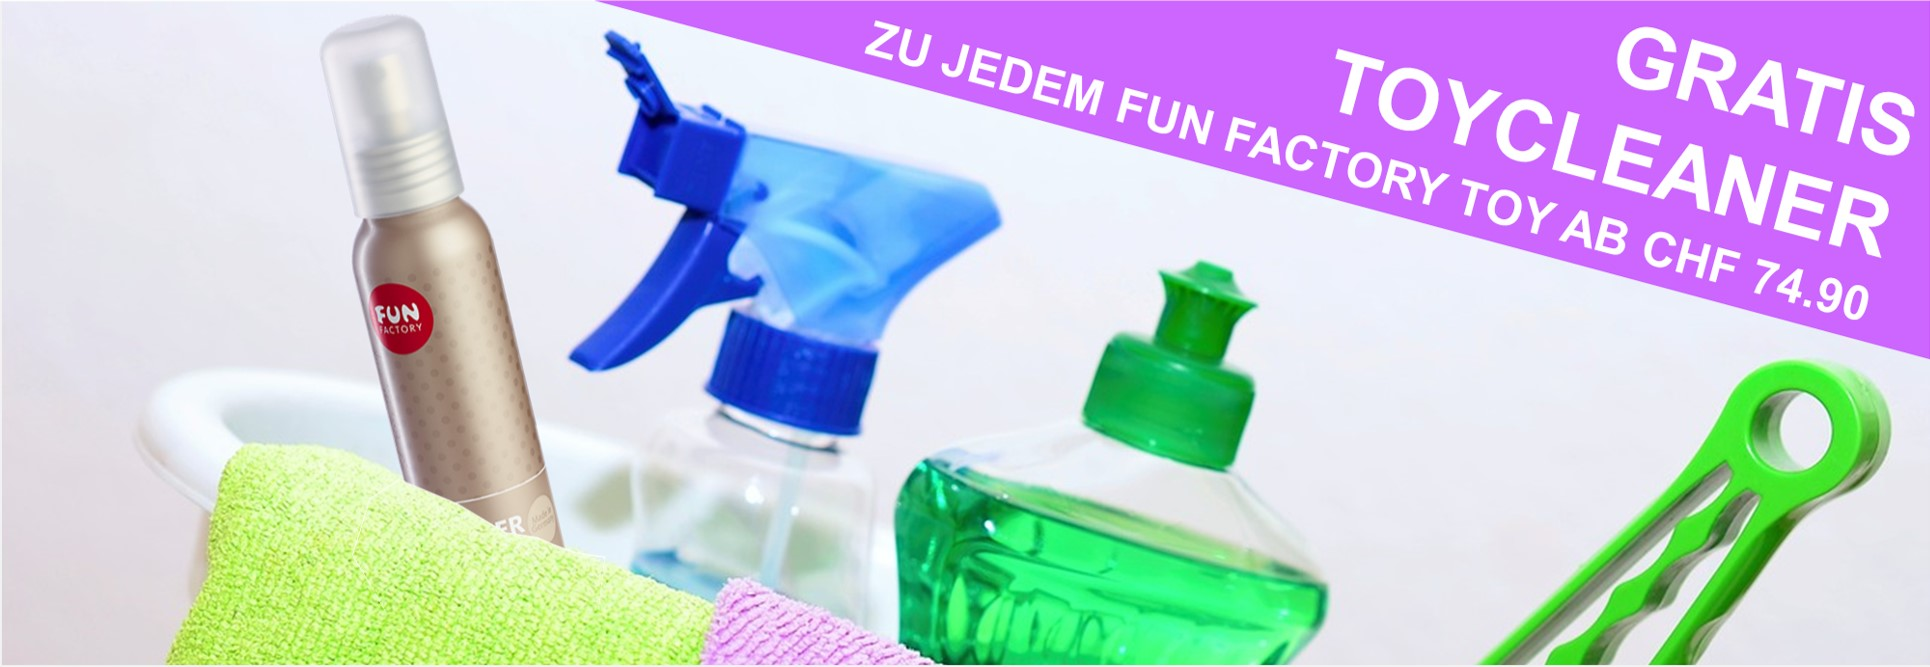 FREE TOYCLEANER